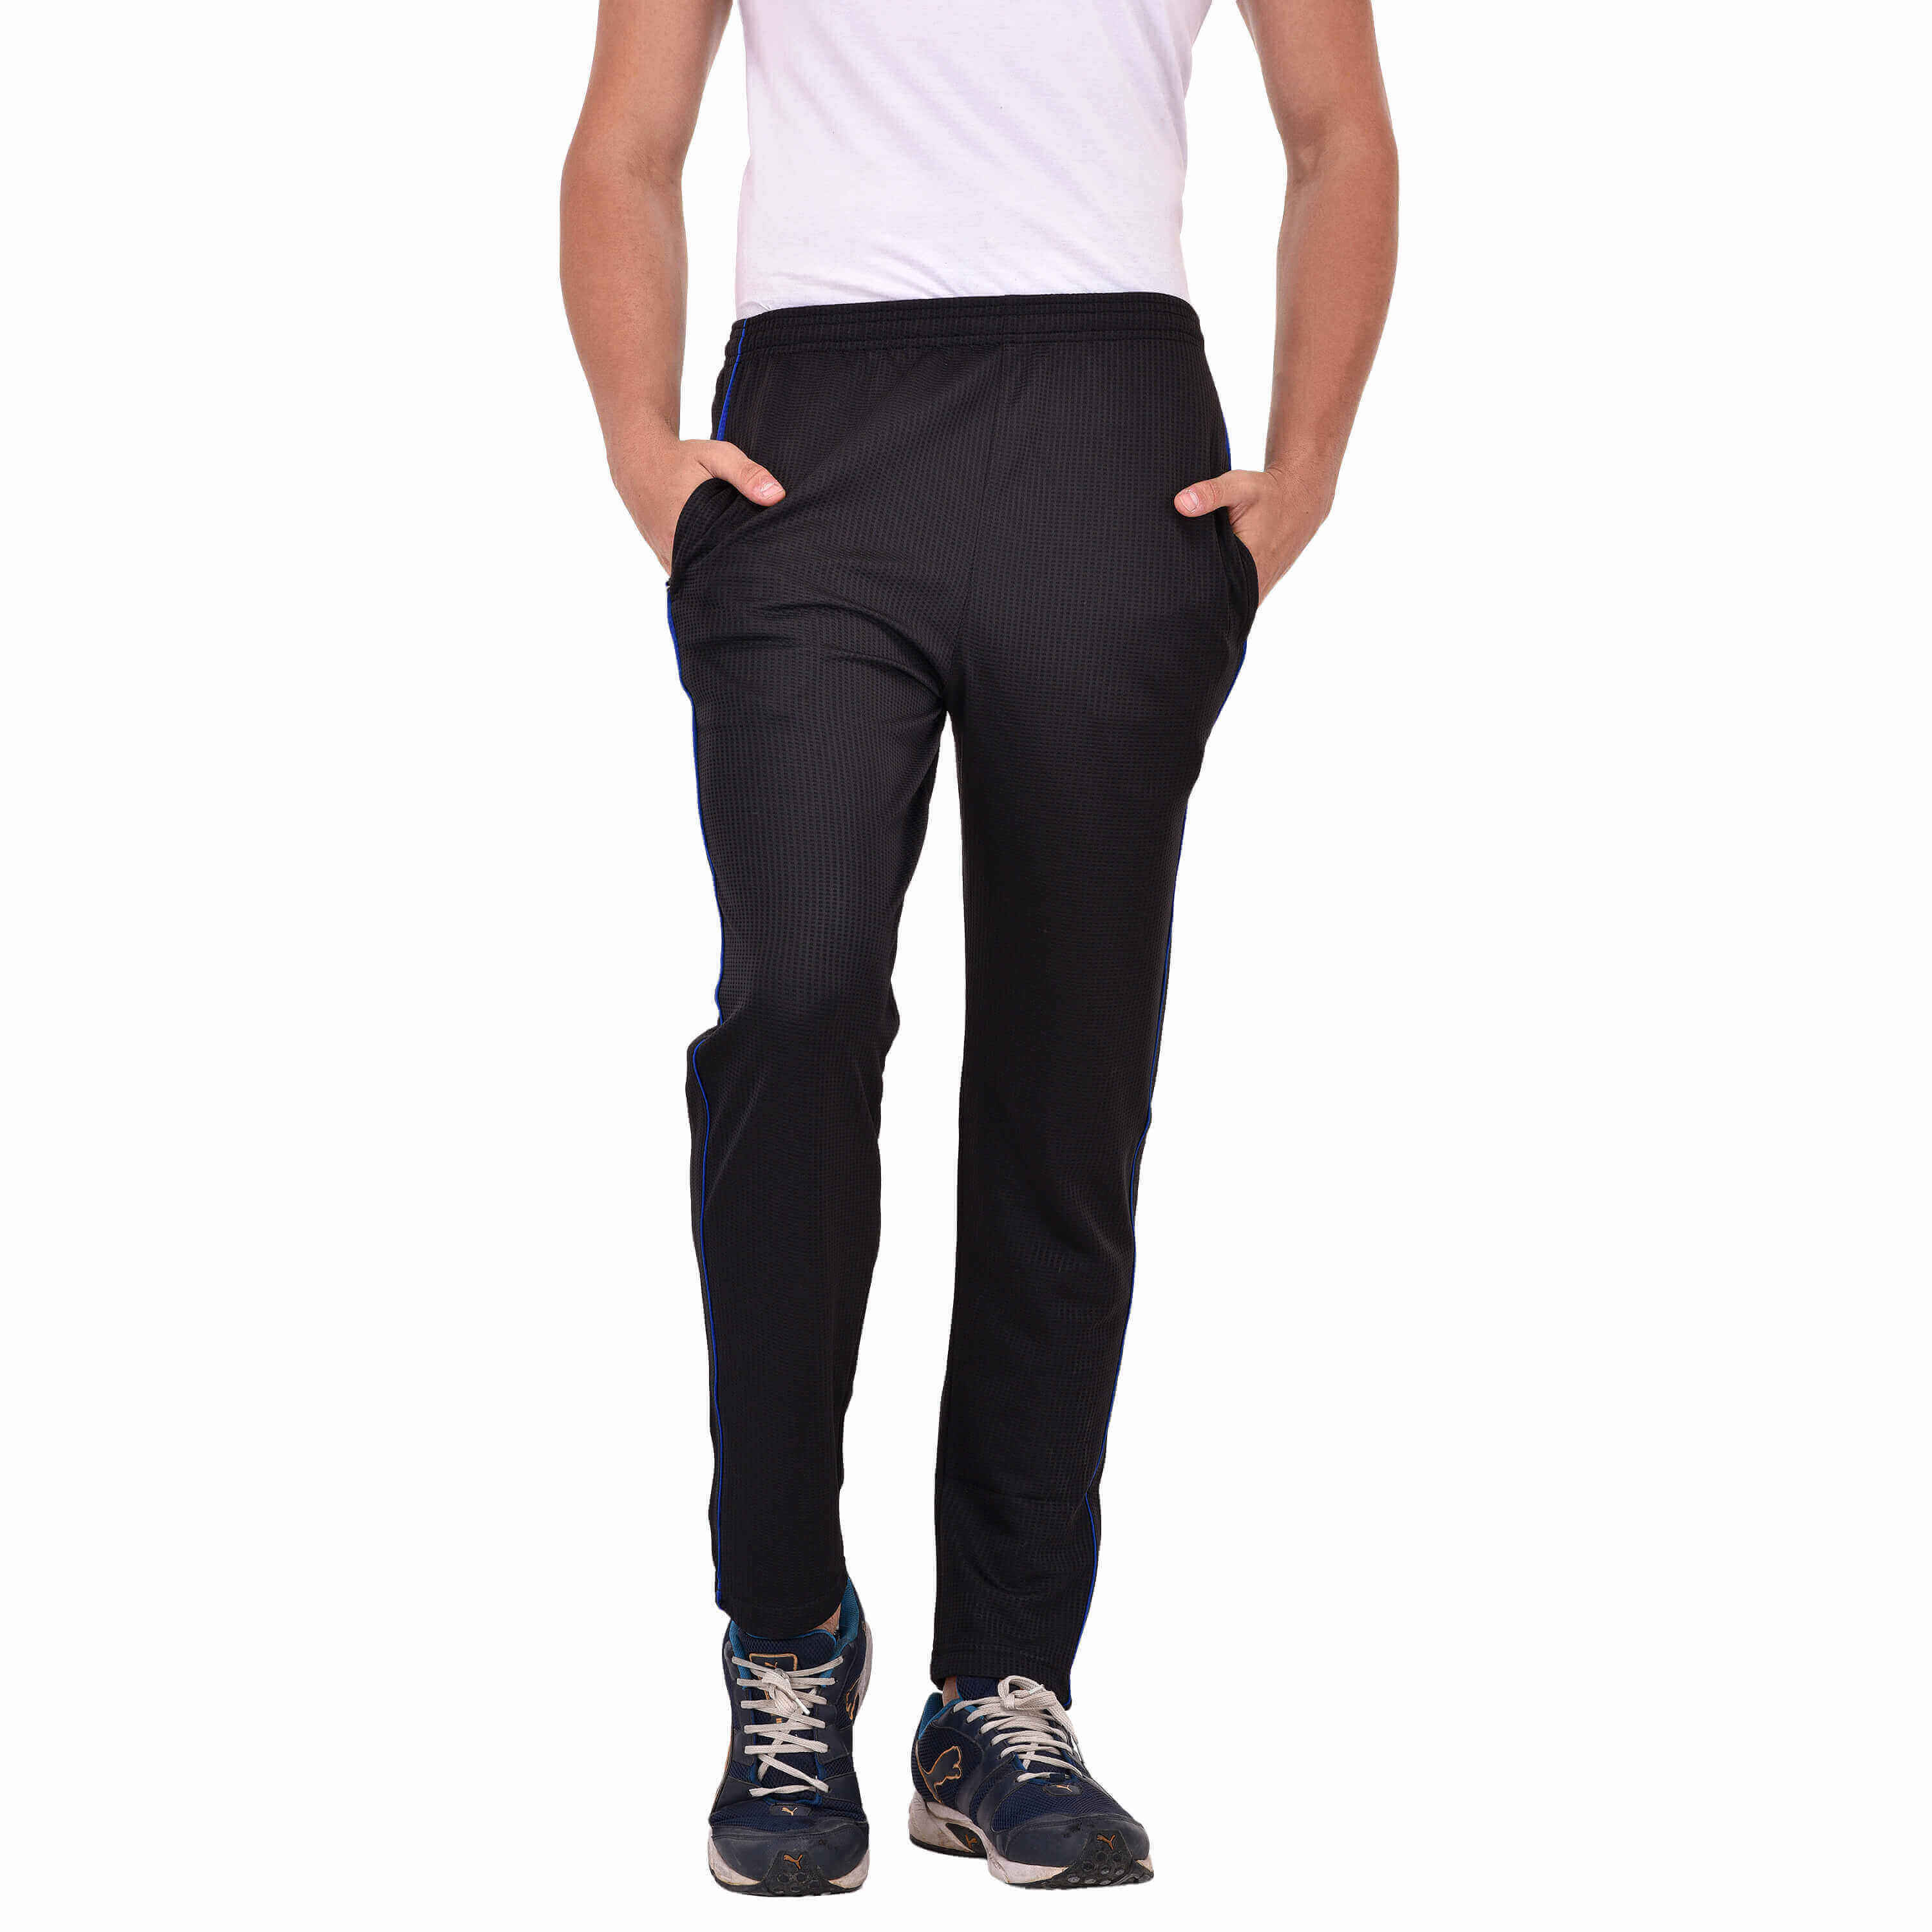 Mens Tracksuit Bottoms Manufacturers in Nanded